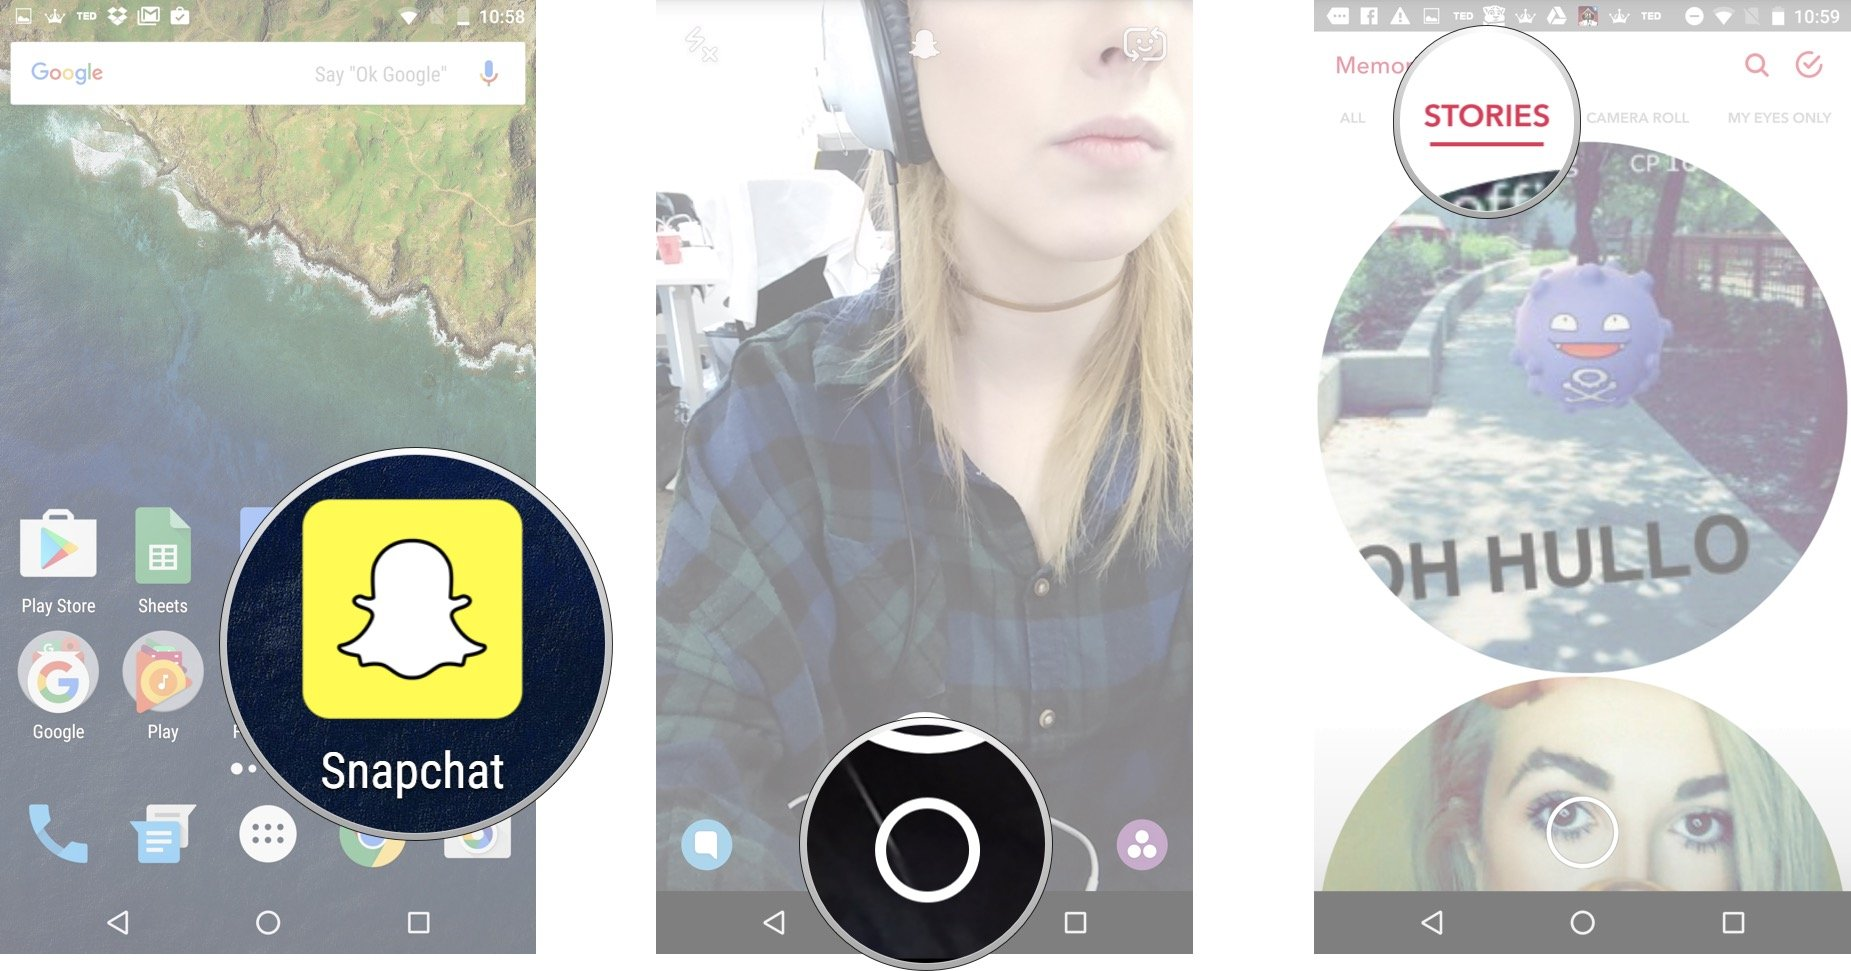 Launch Snapchat from your home screen and tap on the smaller white circle underneath the shutter button to access Memories. Tap the Stories tab at the top of the screen.